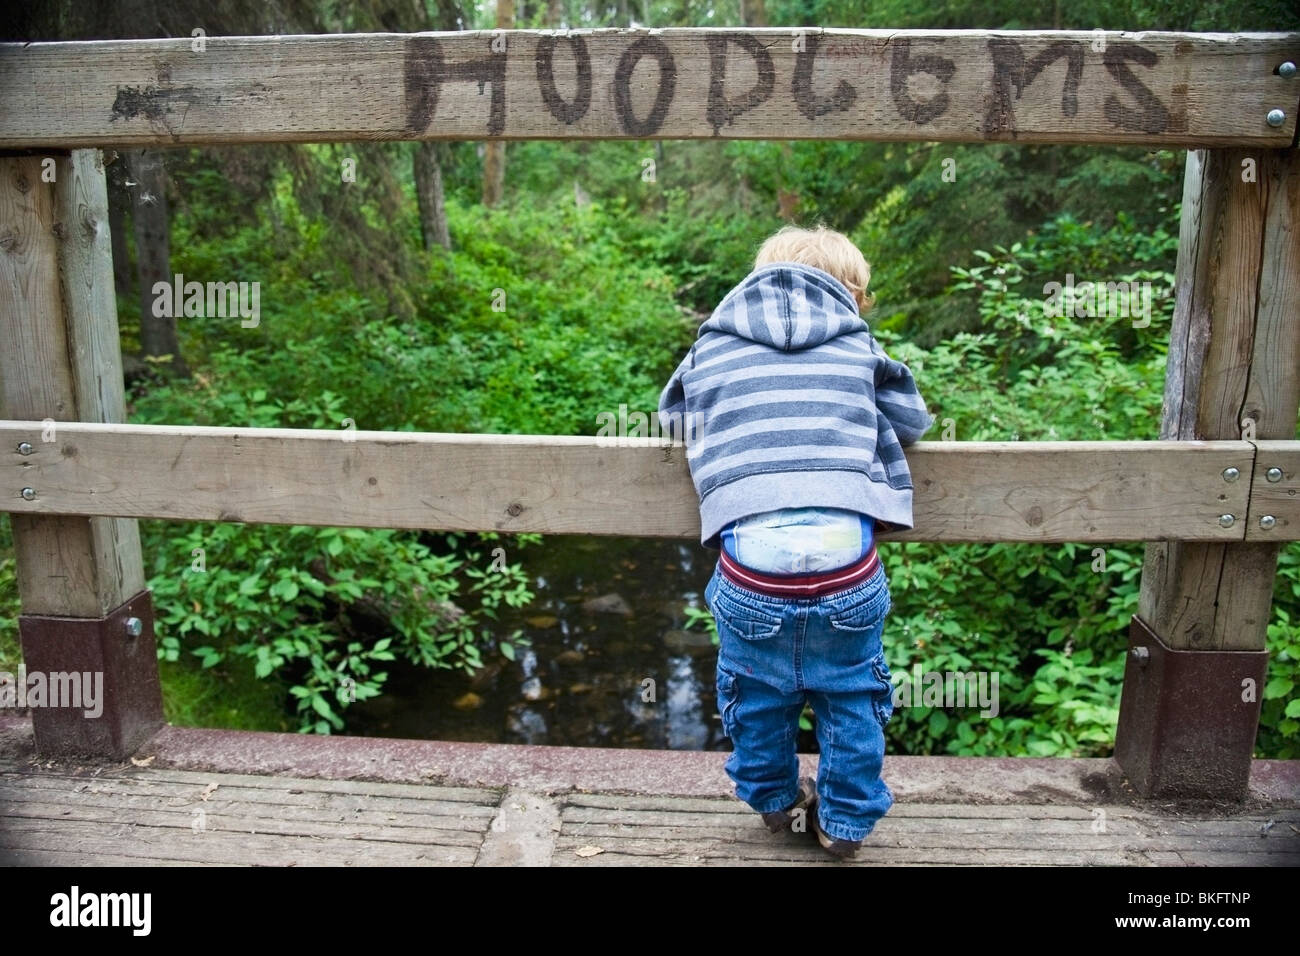 Young Boy Looking Over A Bridge With His Pants Falling Down And The Sign 'Hoodlums' Over His Head - Stock Image